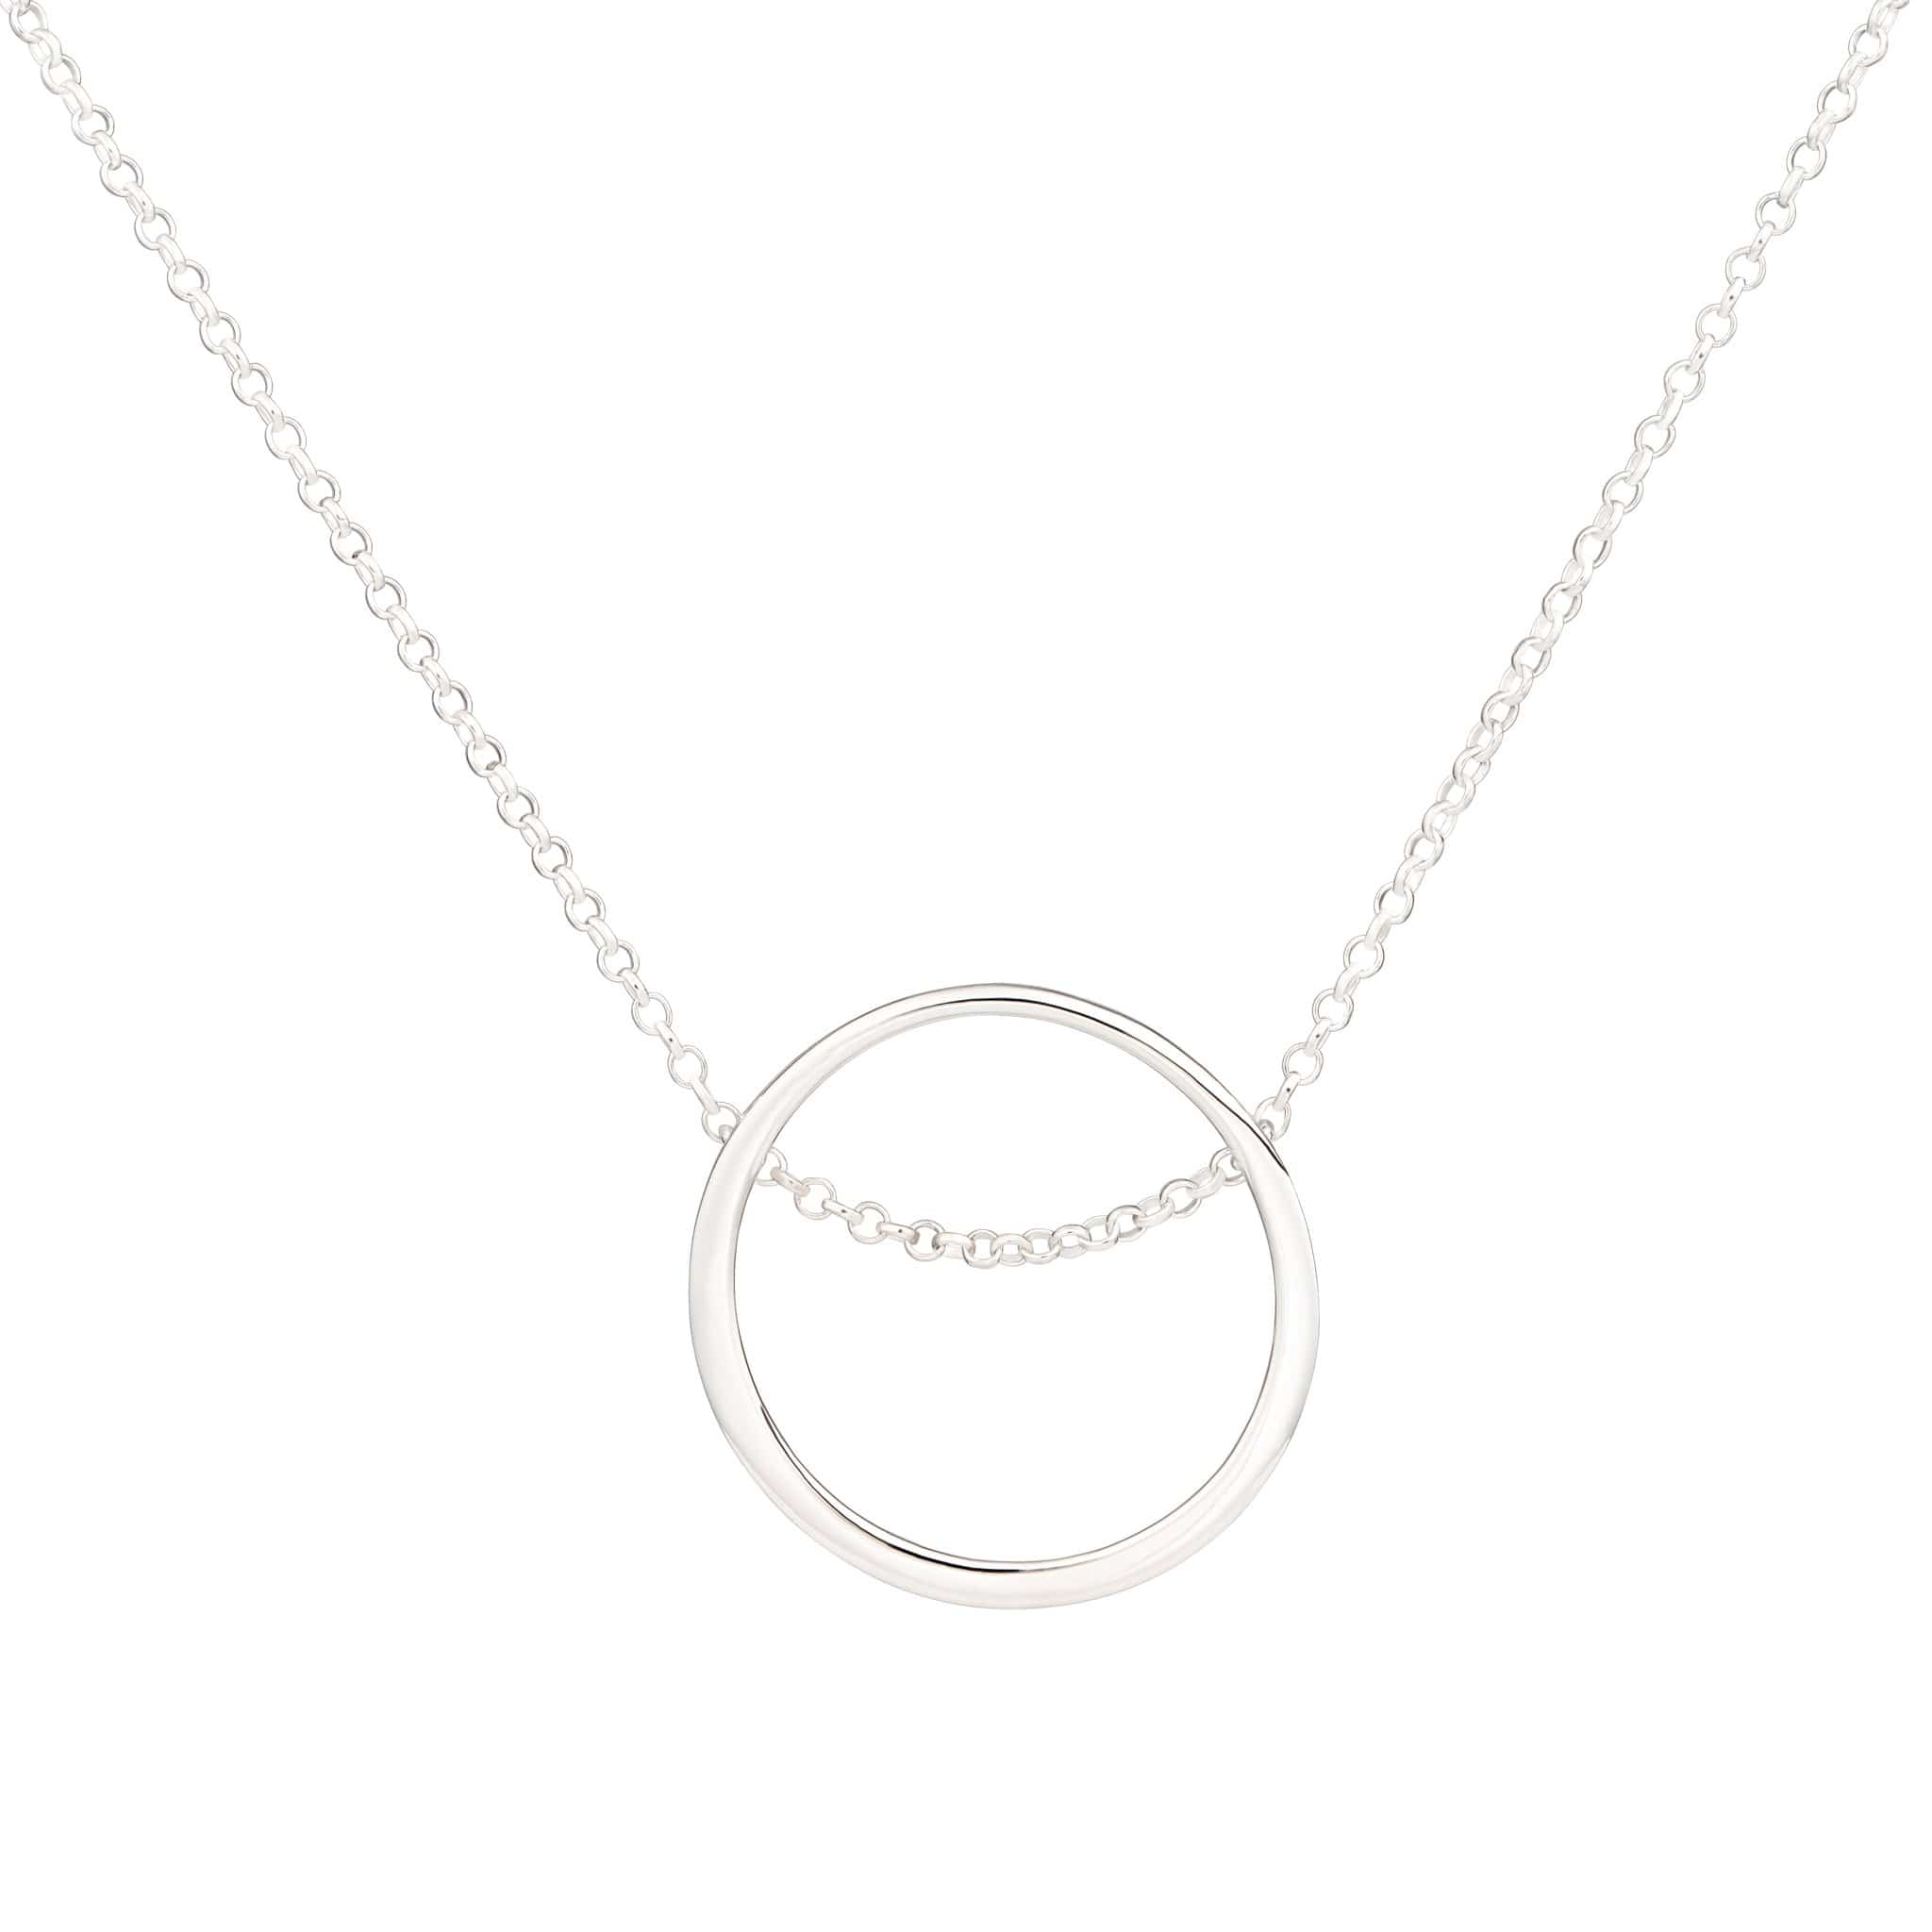 Personalised Silver Open Circle Necklace - Lily Charmed